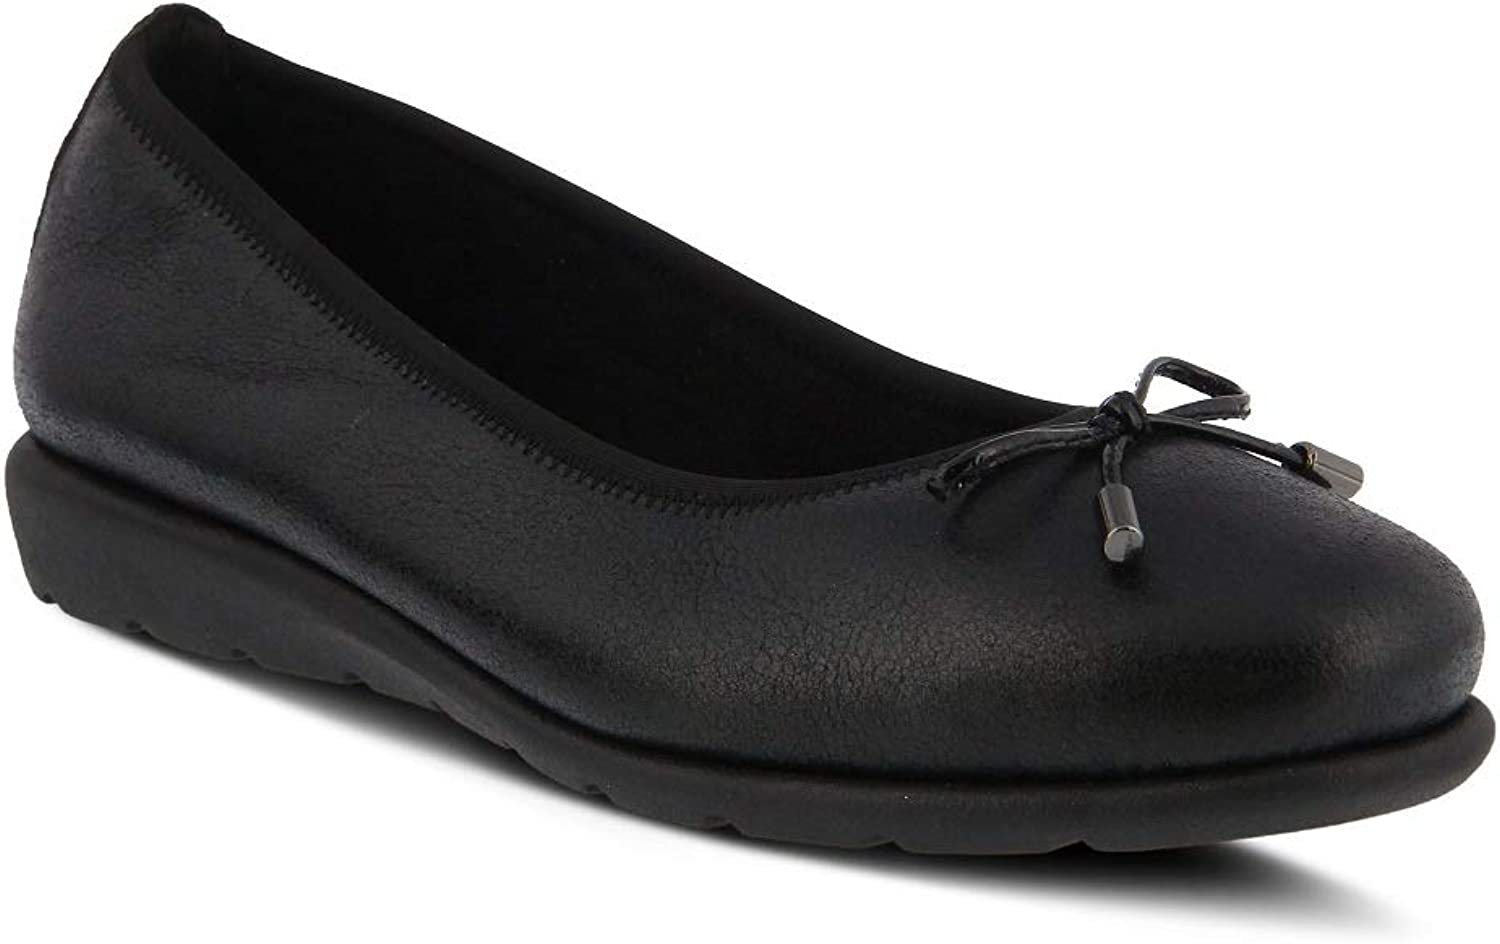 Spring Step Women's Ballerina shoes   color Black   Leather shoes